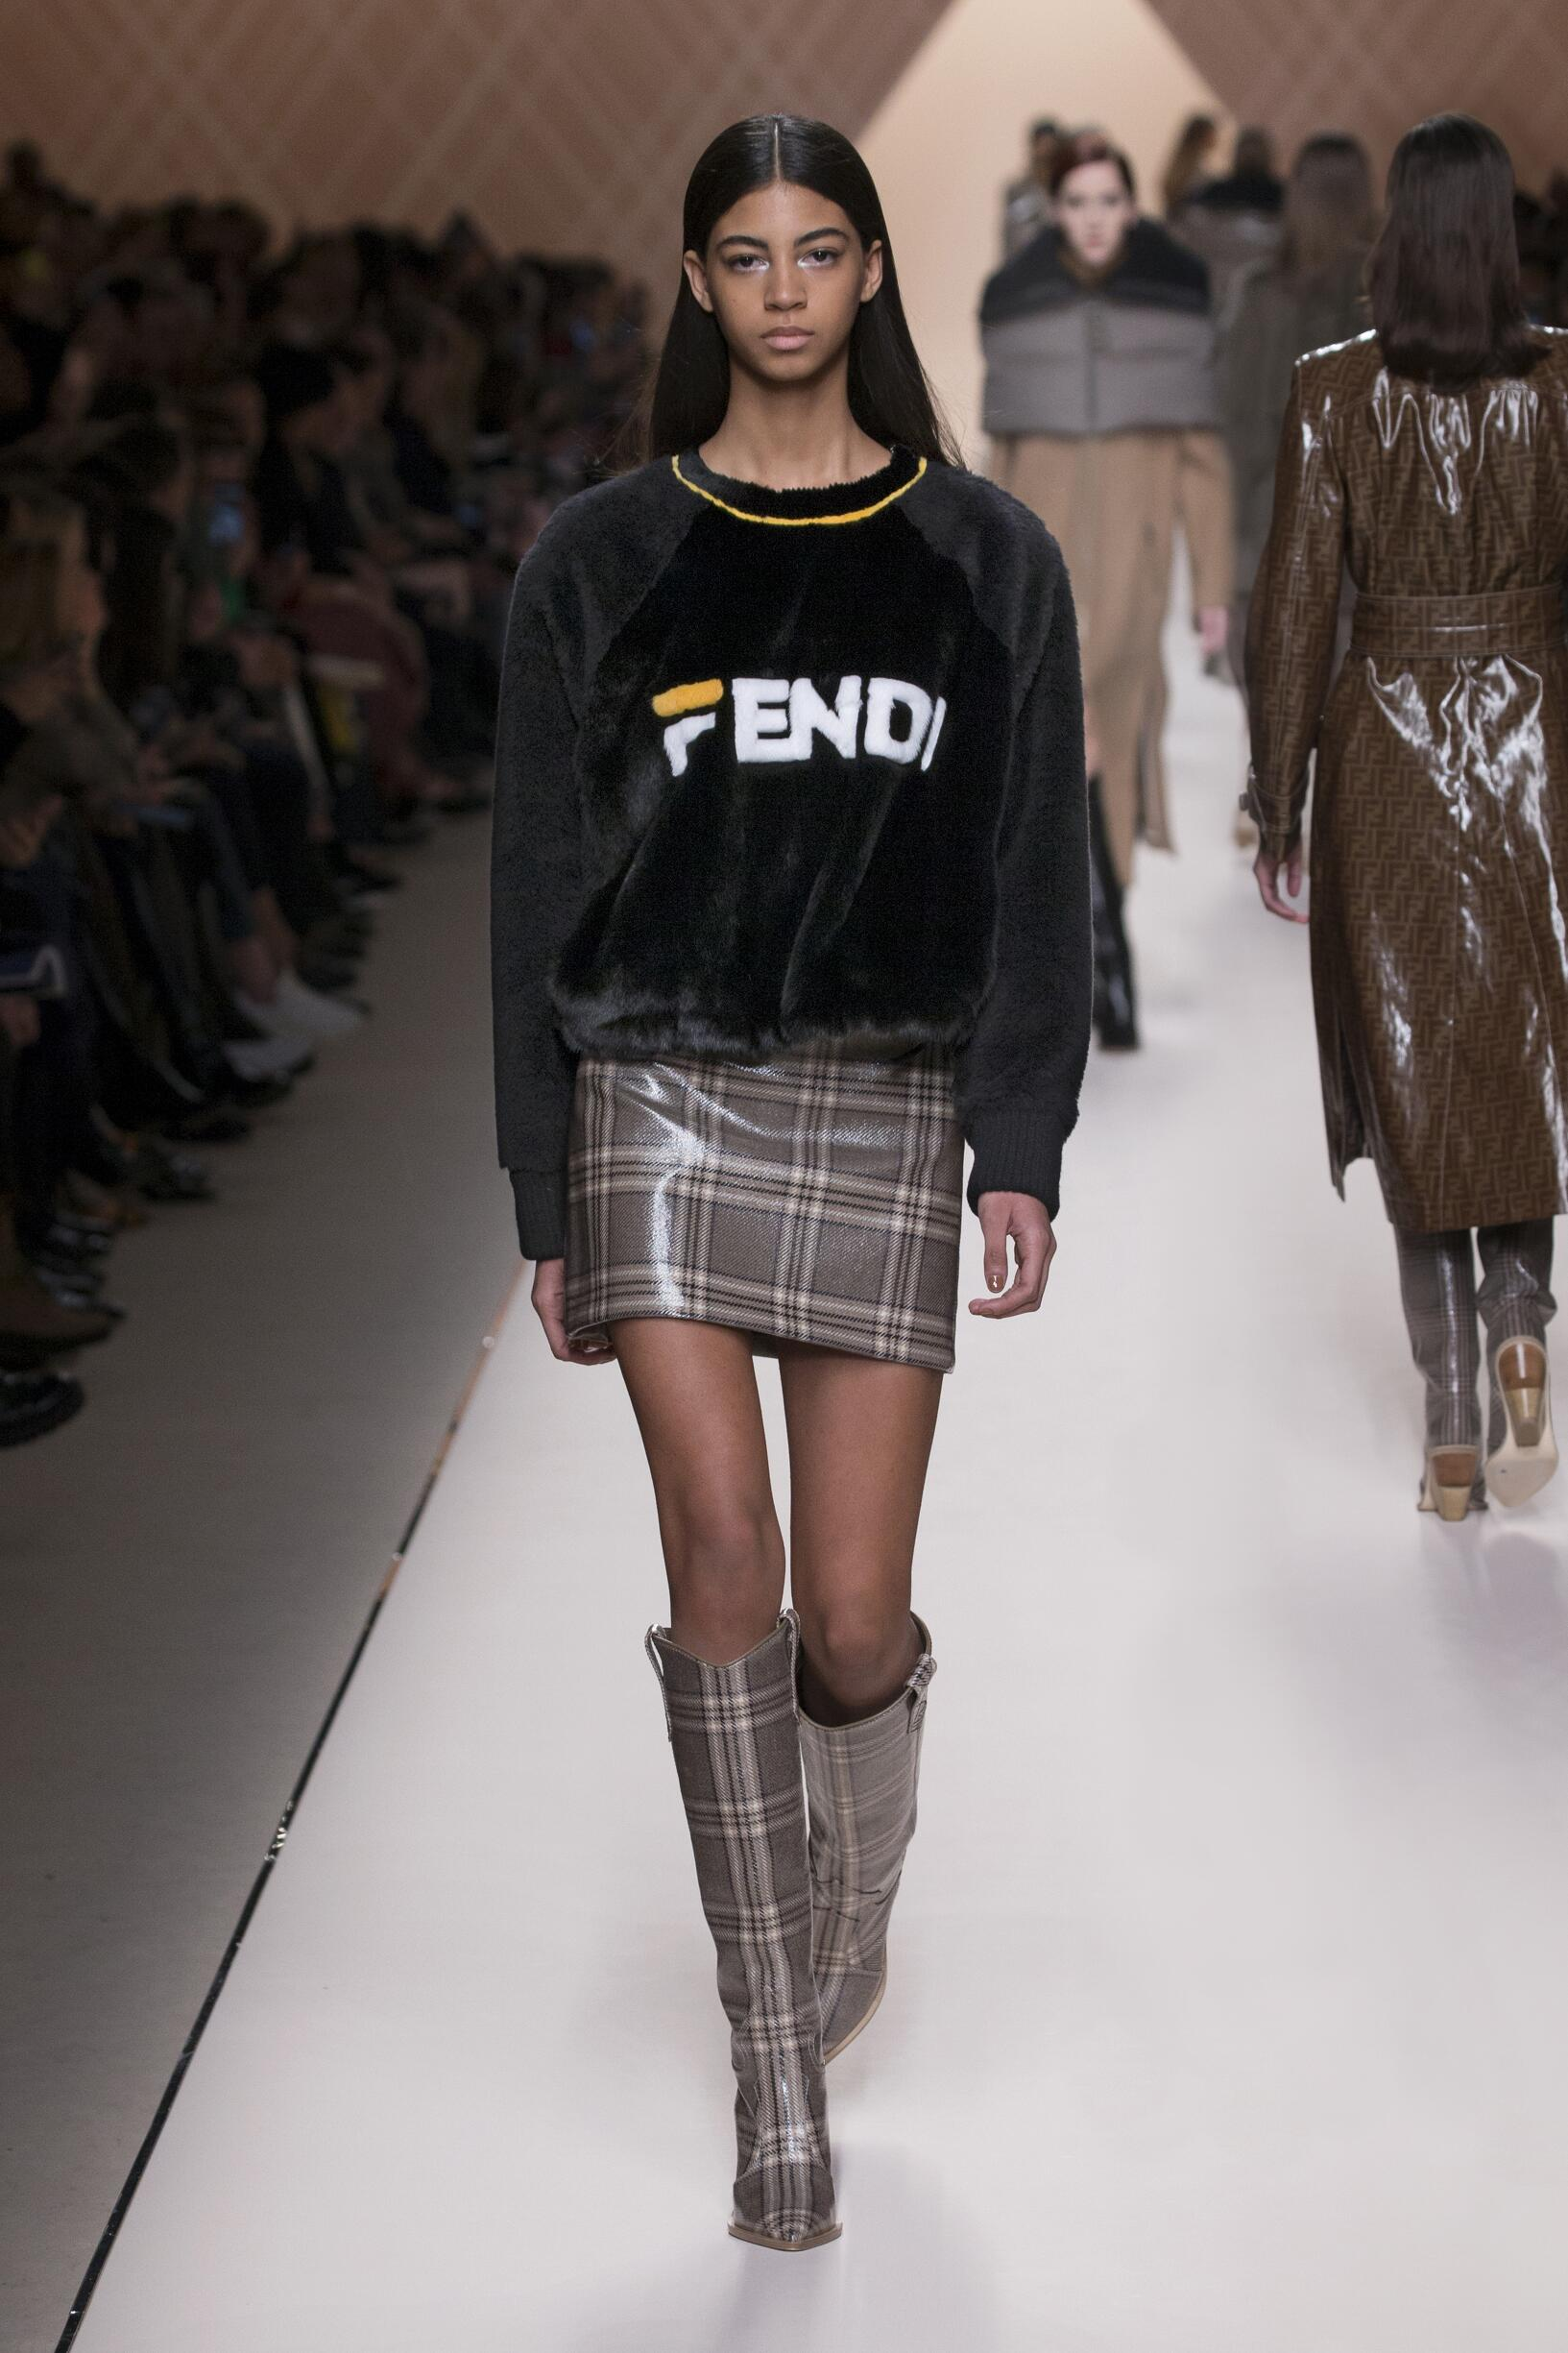 Winter 2018 Fashion Trends Fendi